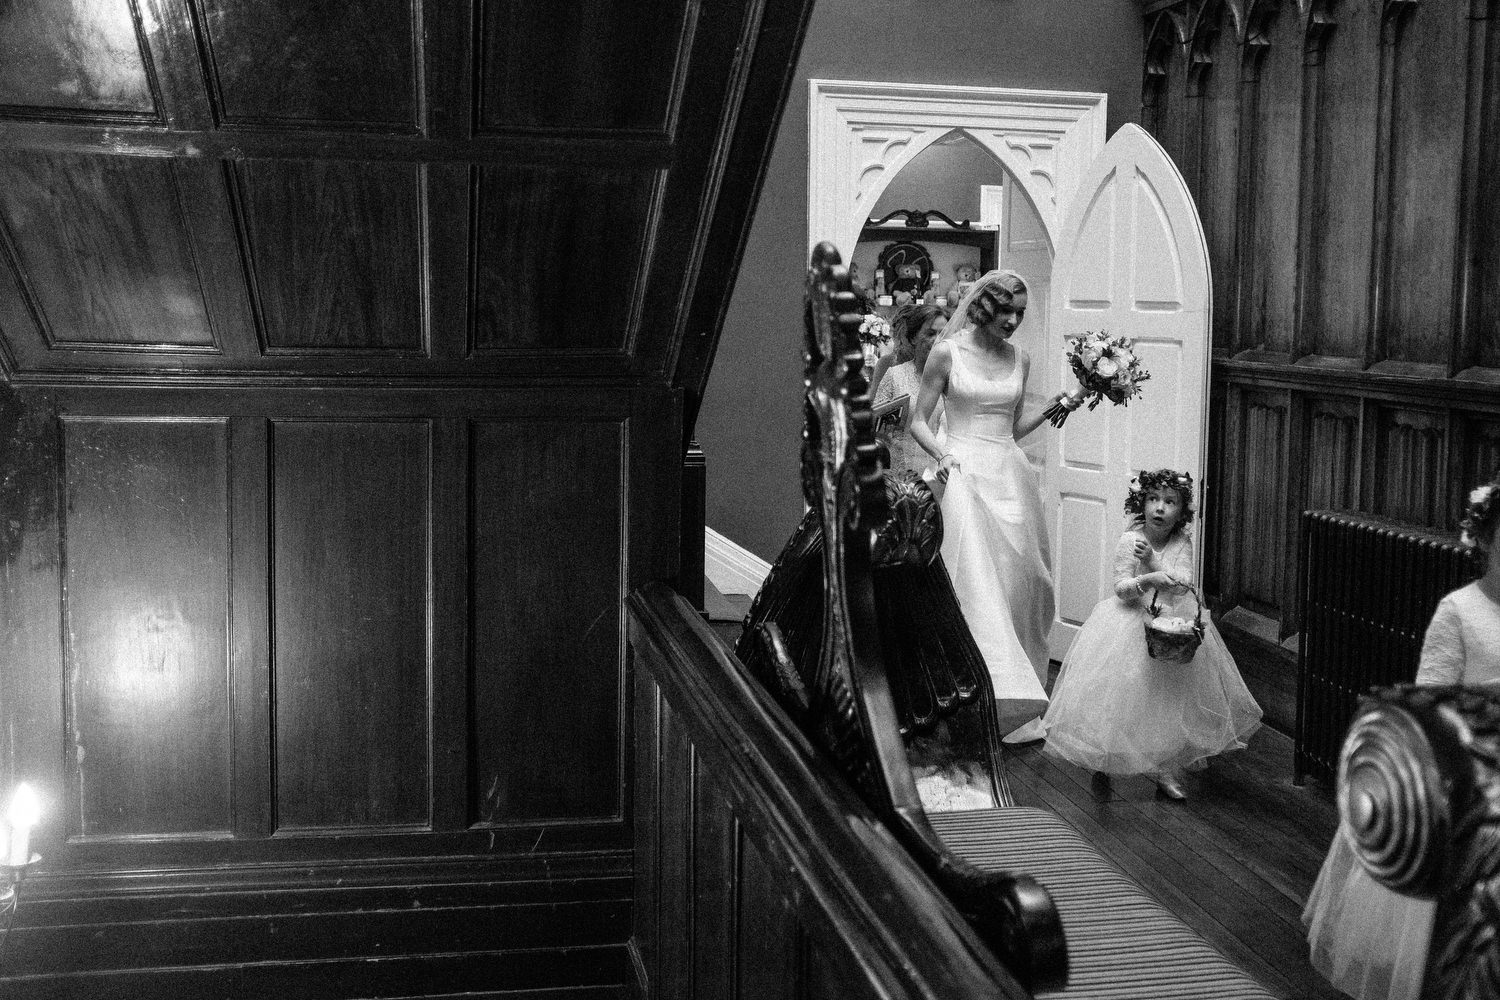 000000000000000000000102_bride_style_vintage_photography_david_mcclelland_ireland_castle_hollywood_kinnity_wedding_photographer_fujifilm